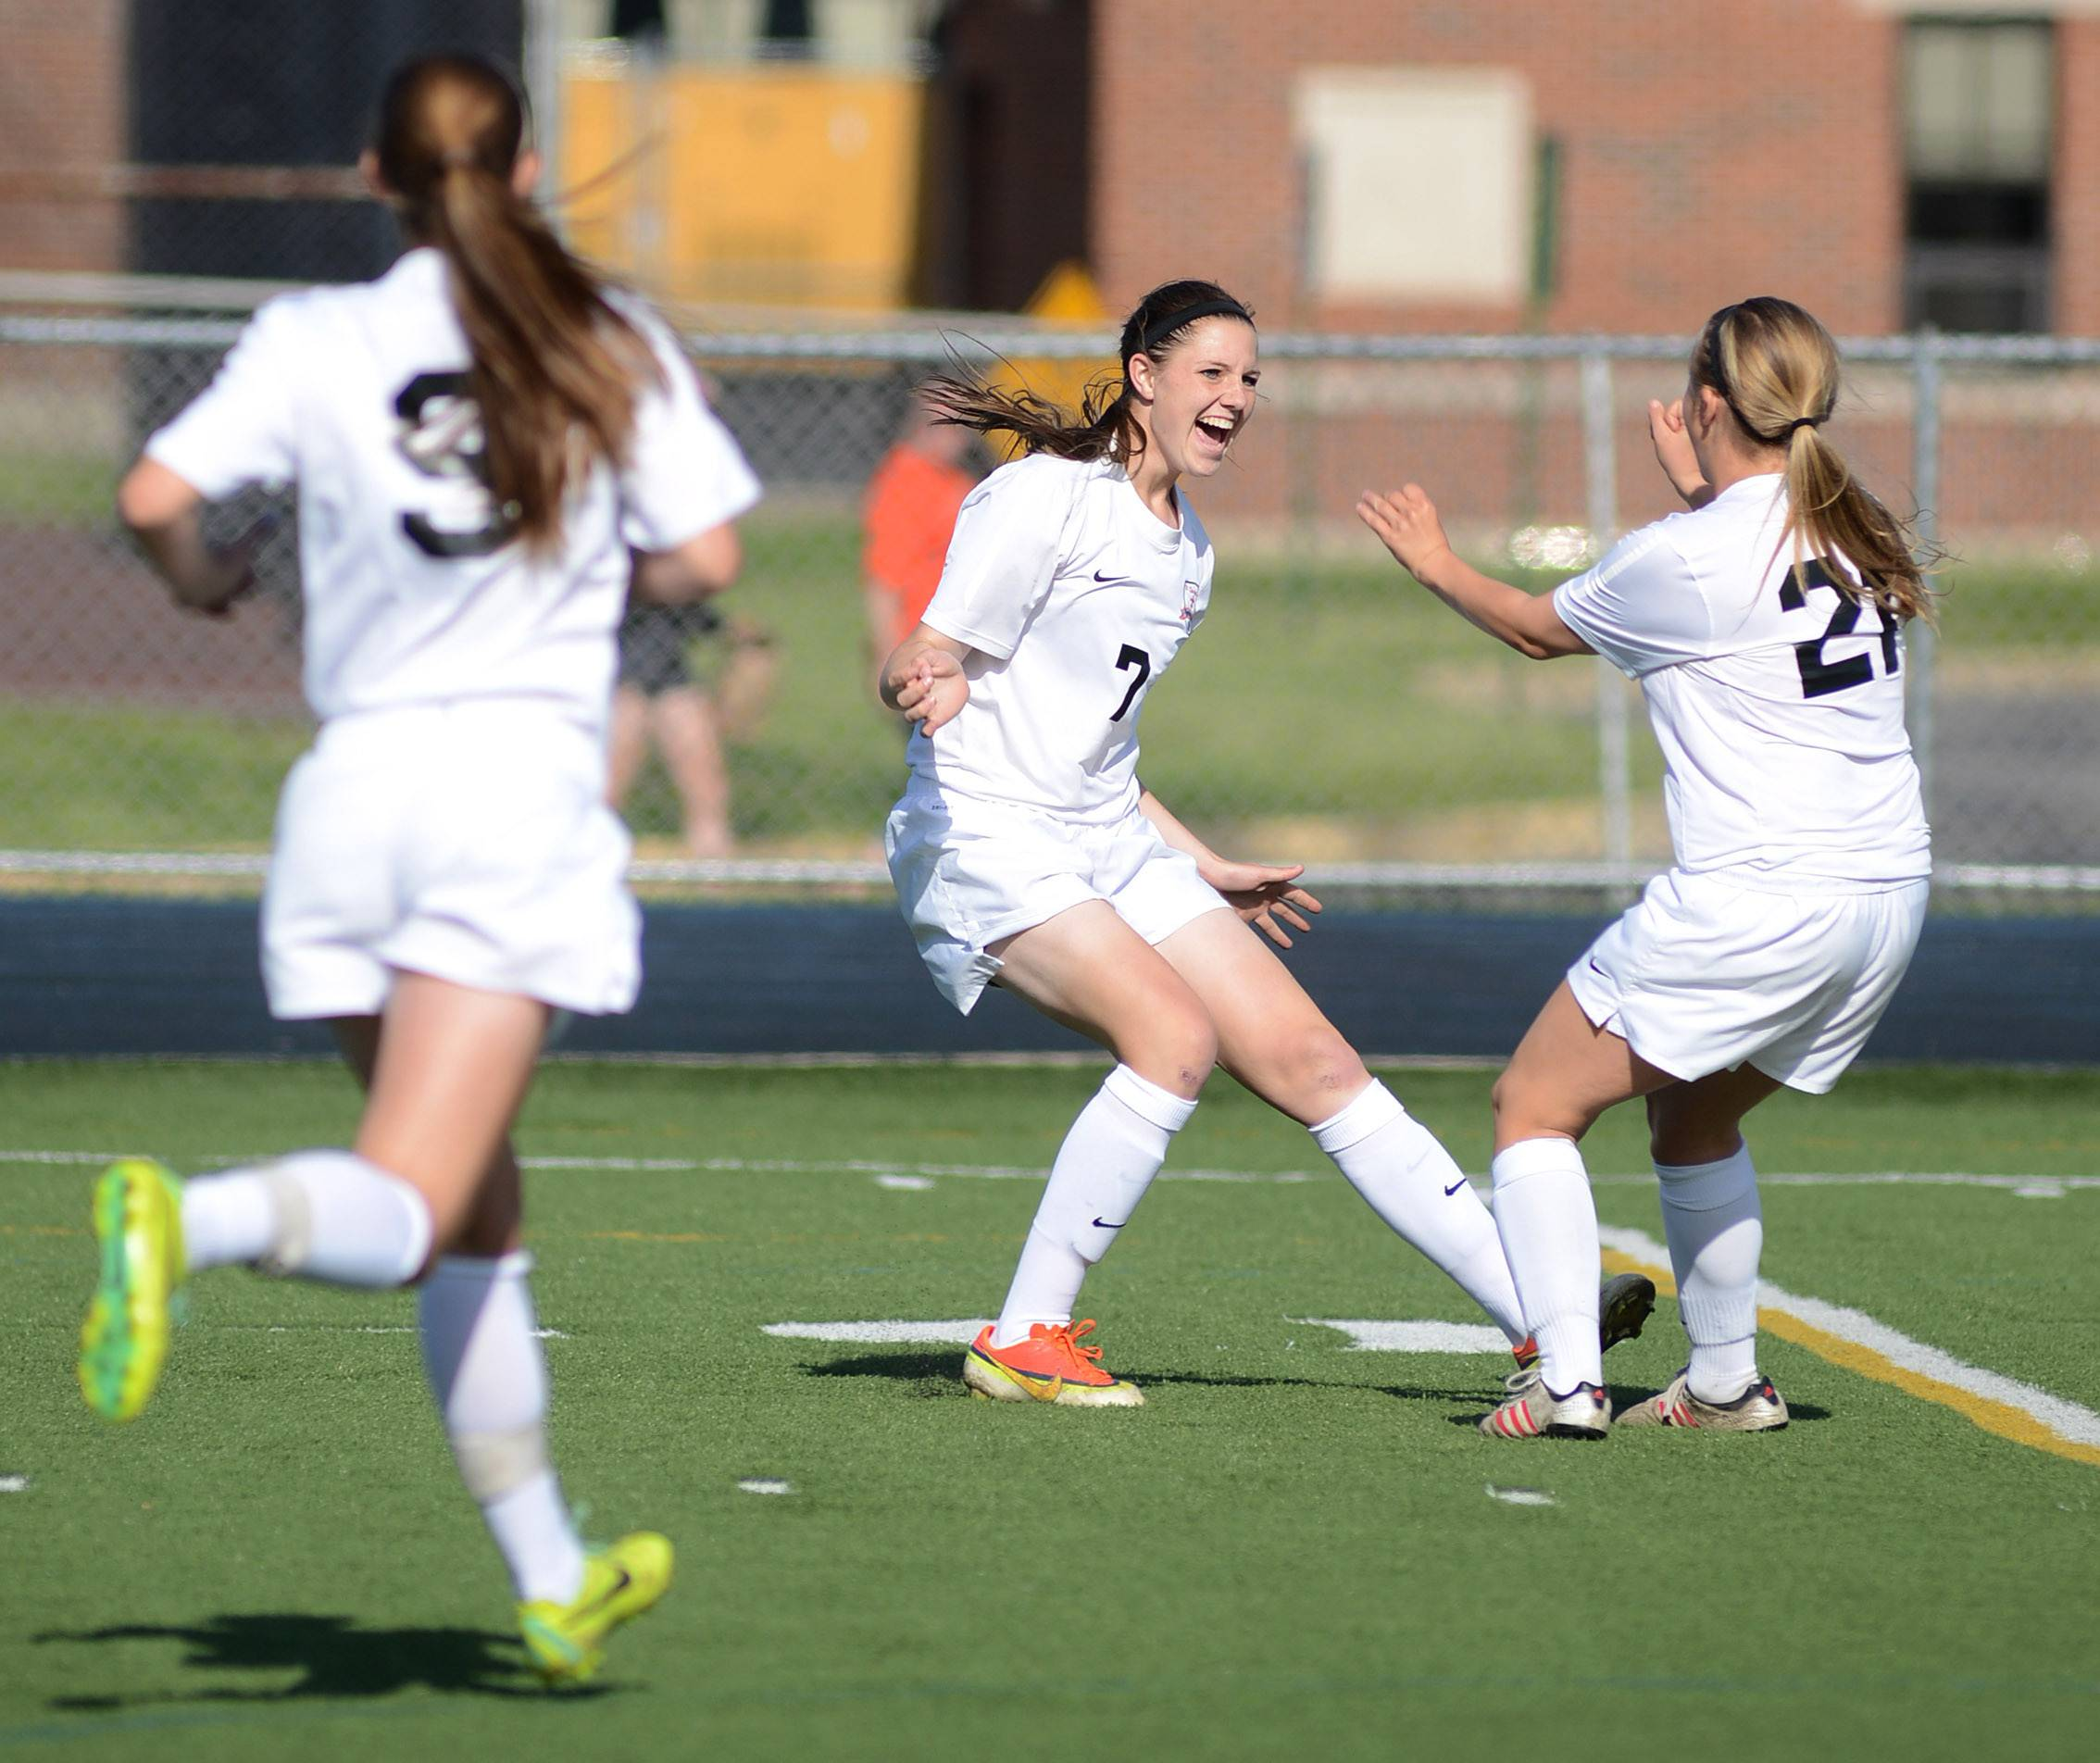 St. Charles East's Rion Gaffney, center, celebrates her goal, and the first for the team, with teammate Amanda Hilton, far right, as Darcy Cunningham runs towards them in the first half of the regional title game at West Chicago High School on Friday, May 23.